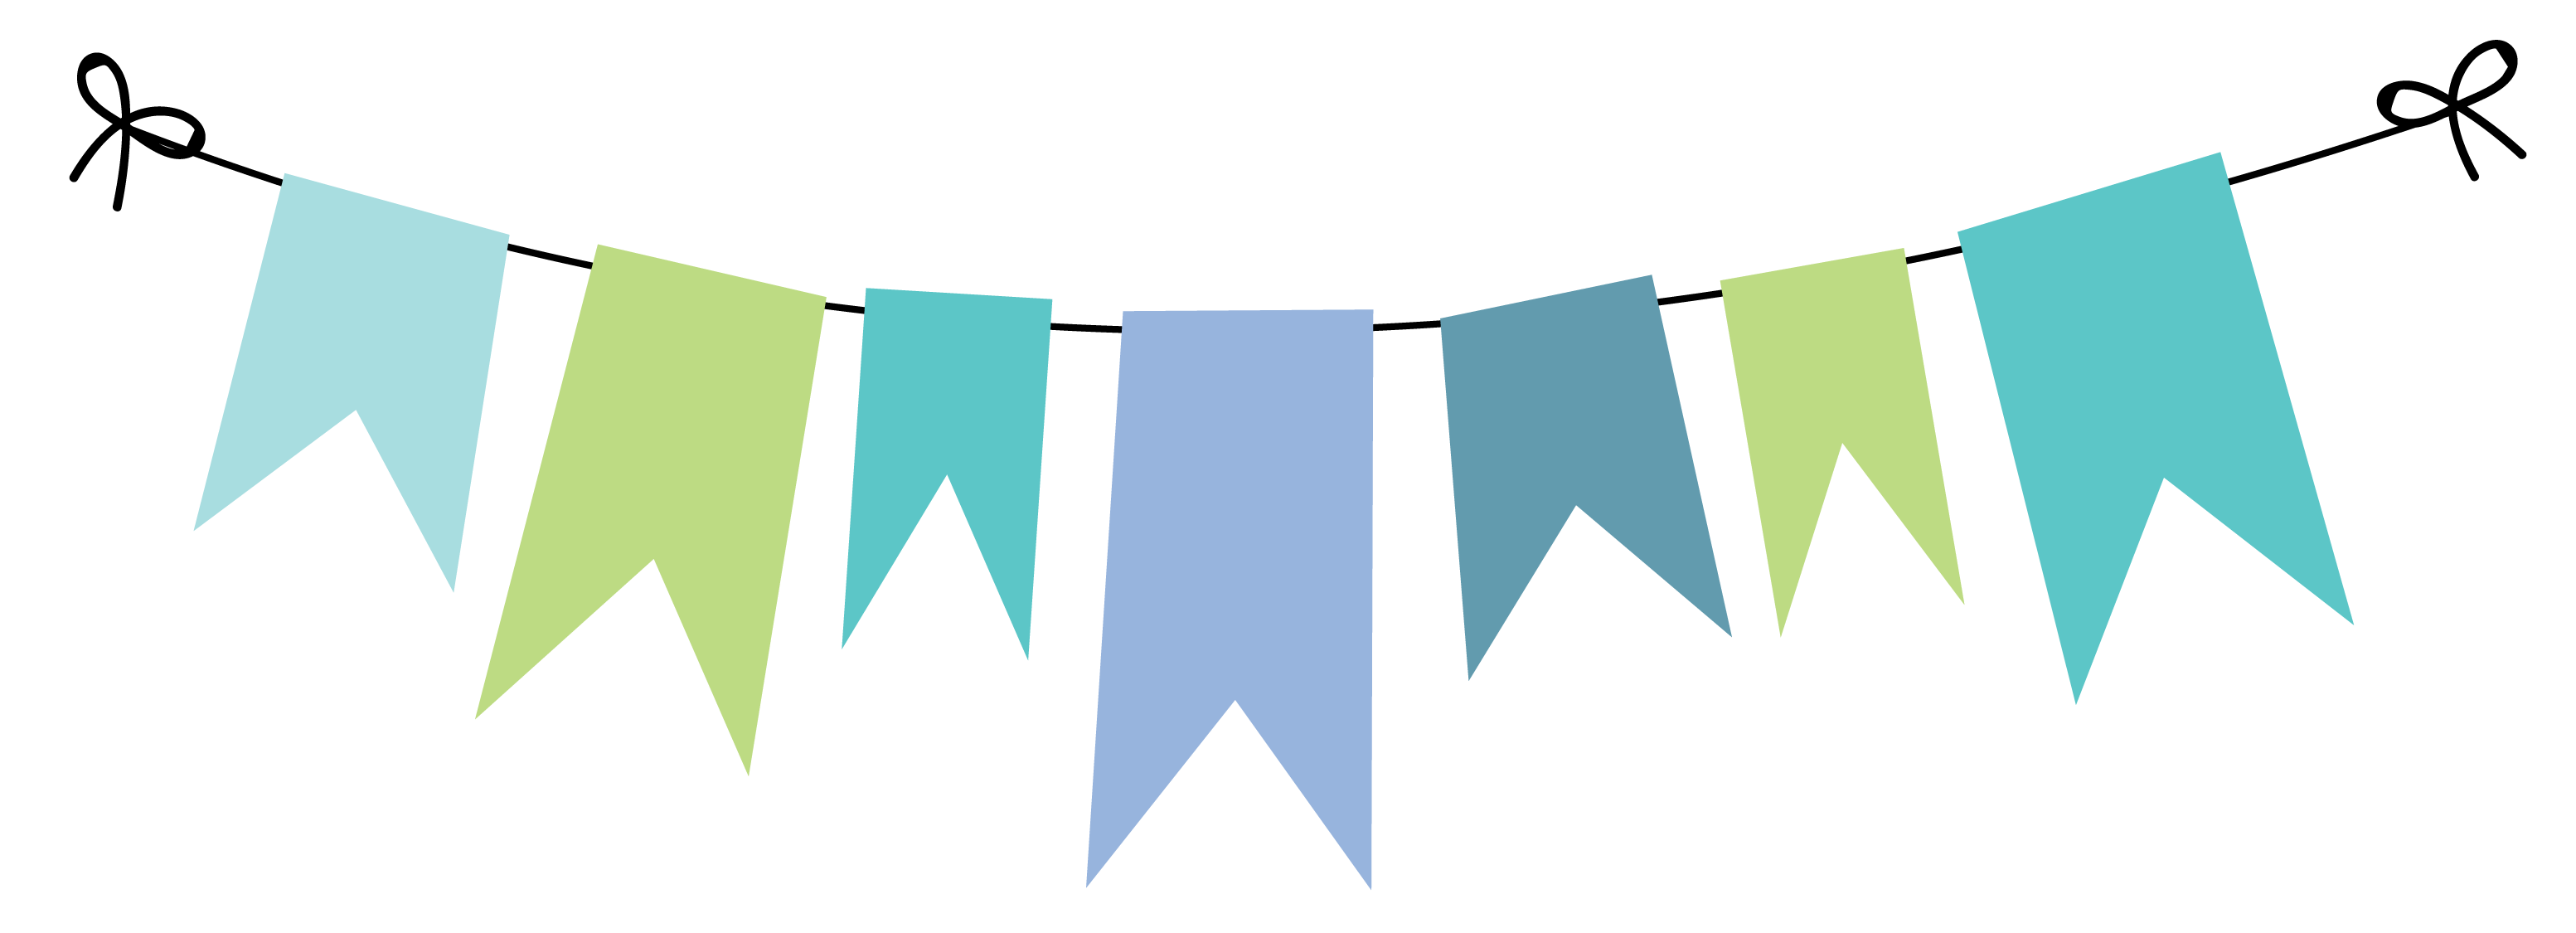 Streamers vector colourful bunting. Pin by letty portillo